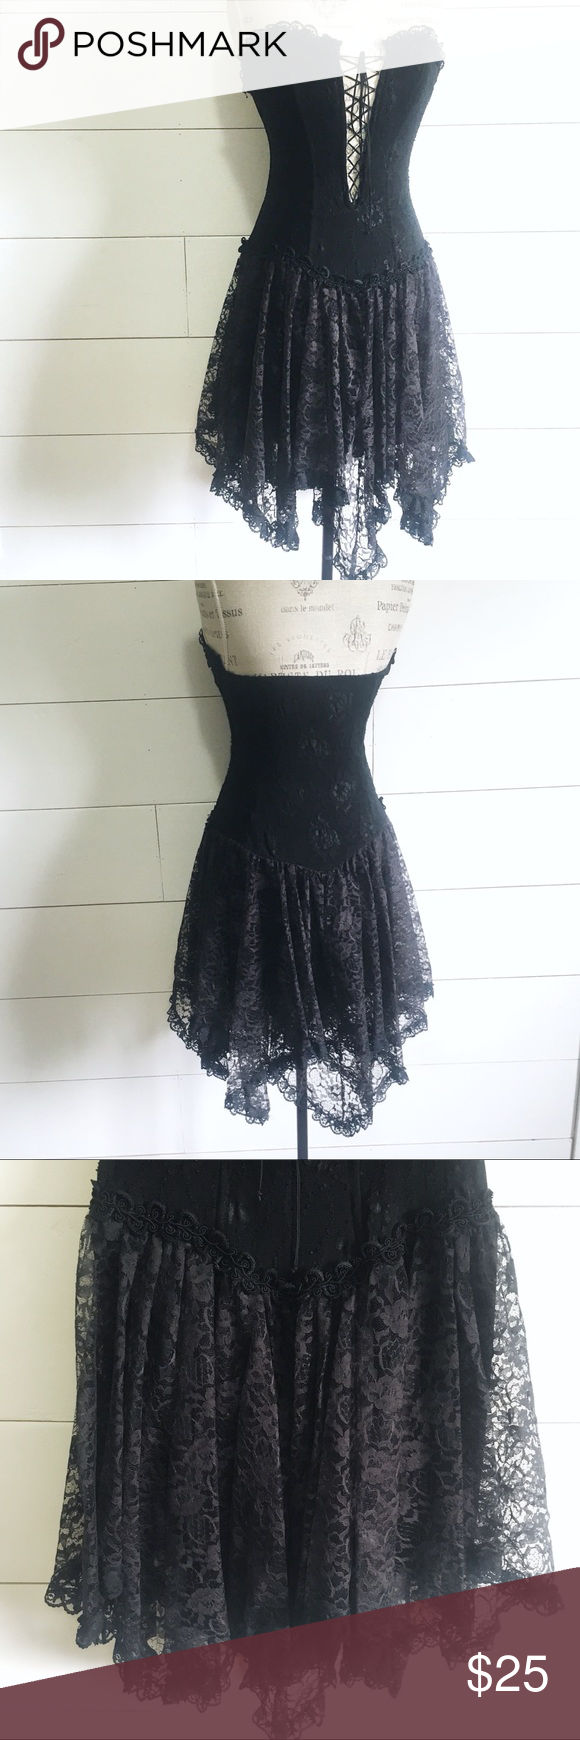 Strapless lace handkerchief hem dress